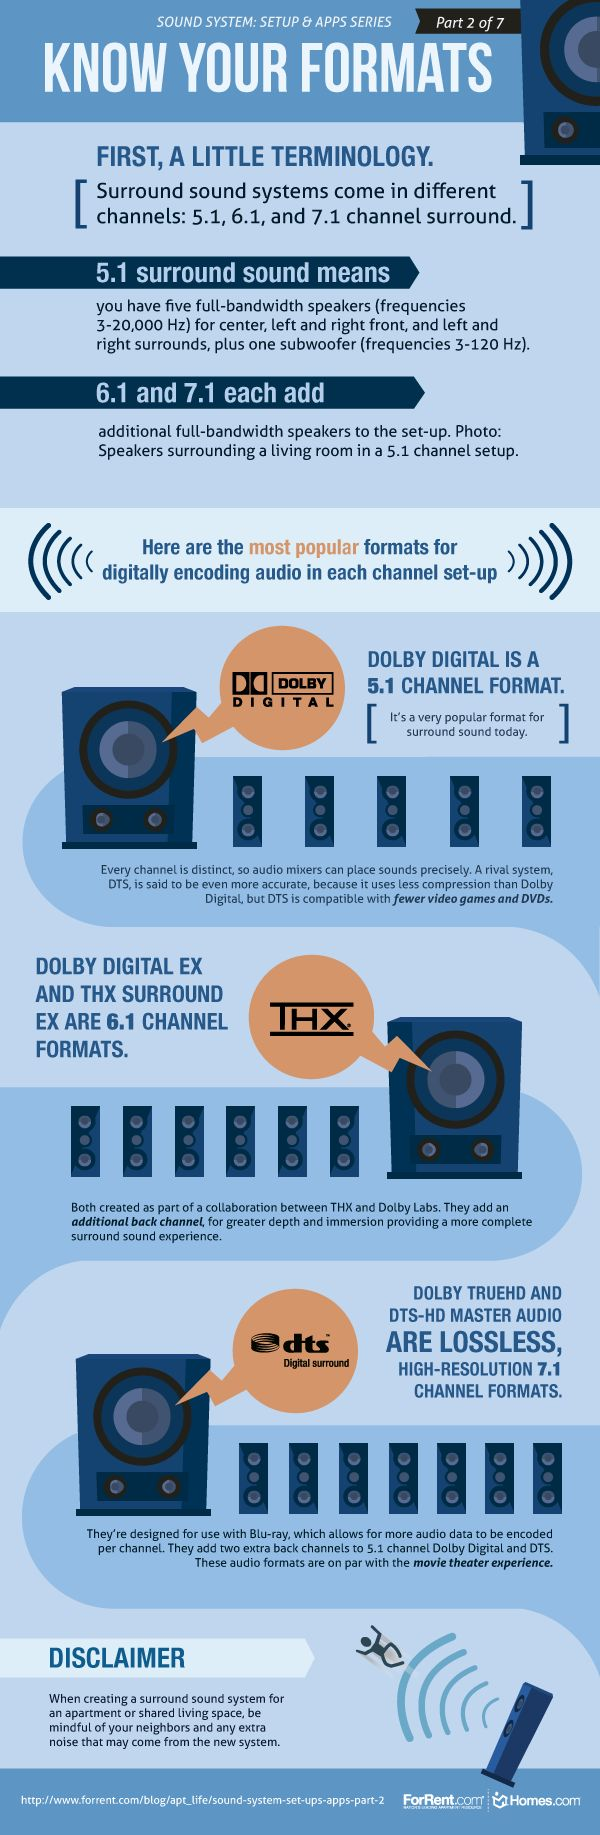 How to Create Surround Sound Systems in Your #Apartment: Part 2! #technology #entertaining